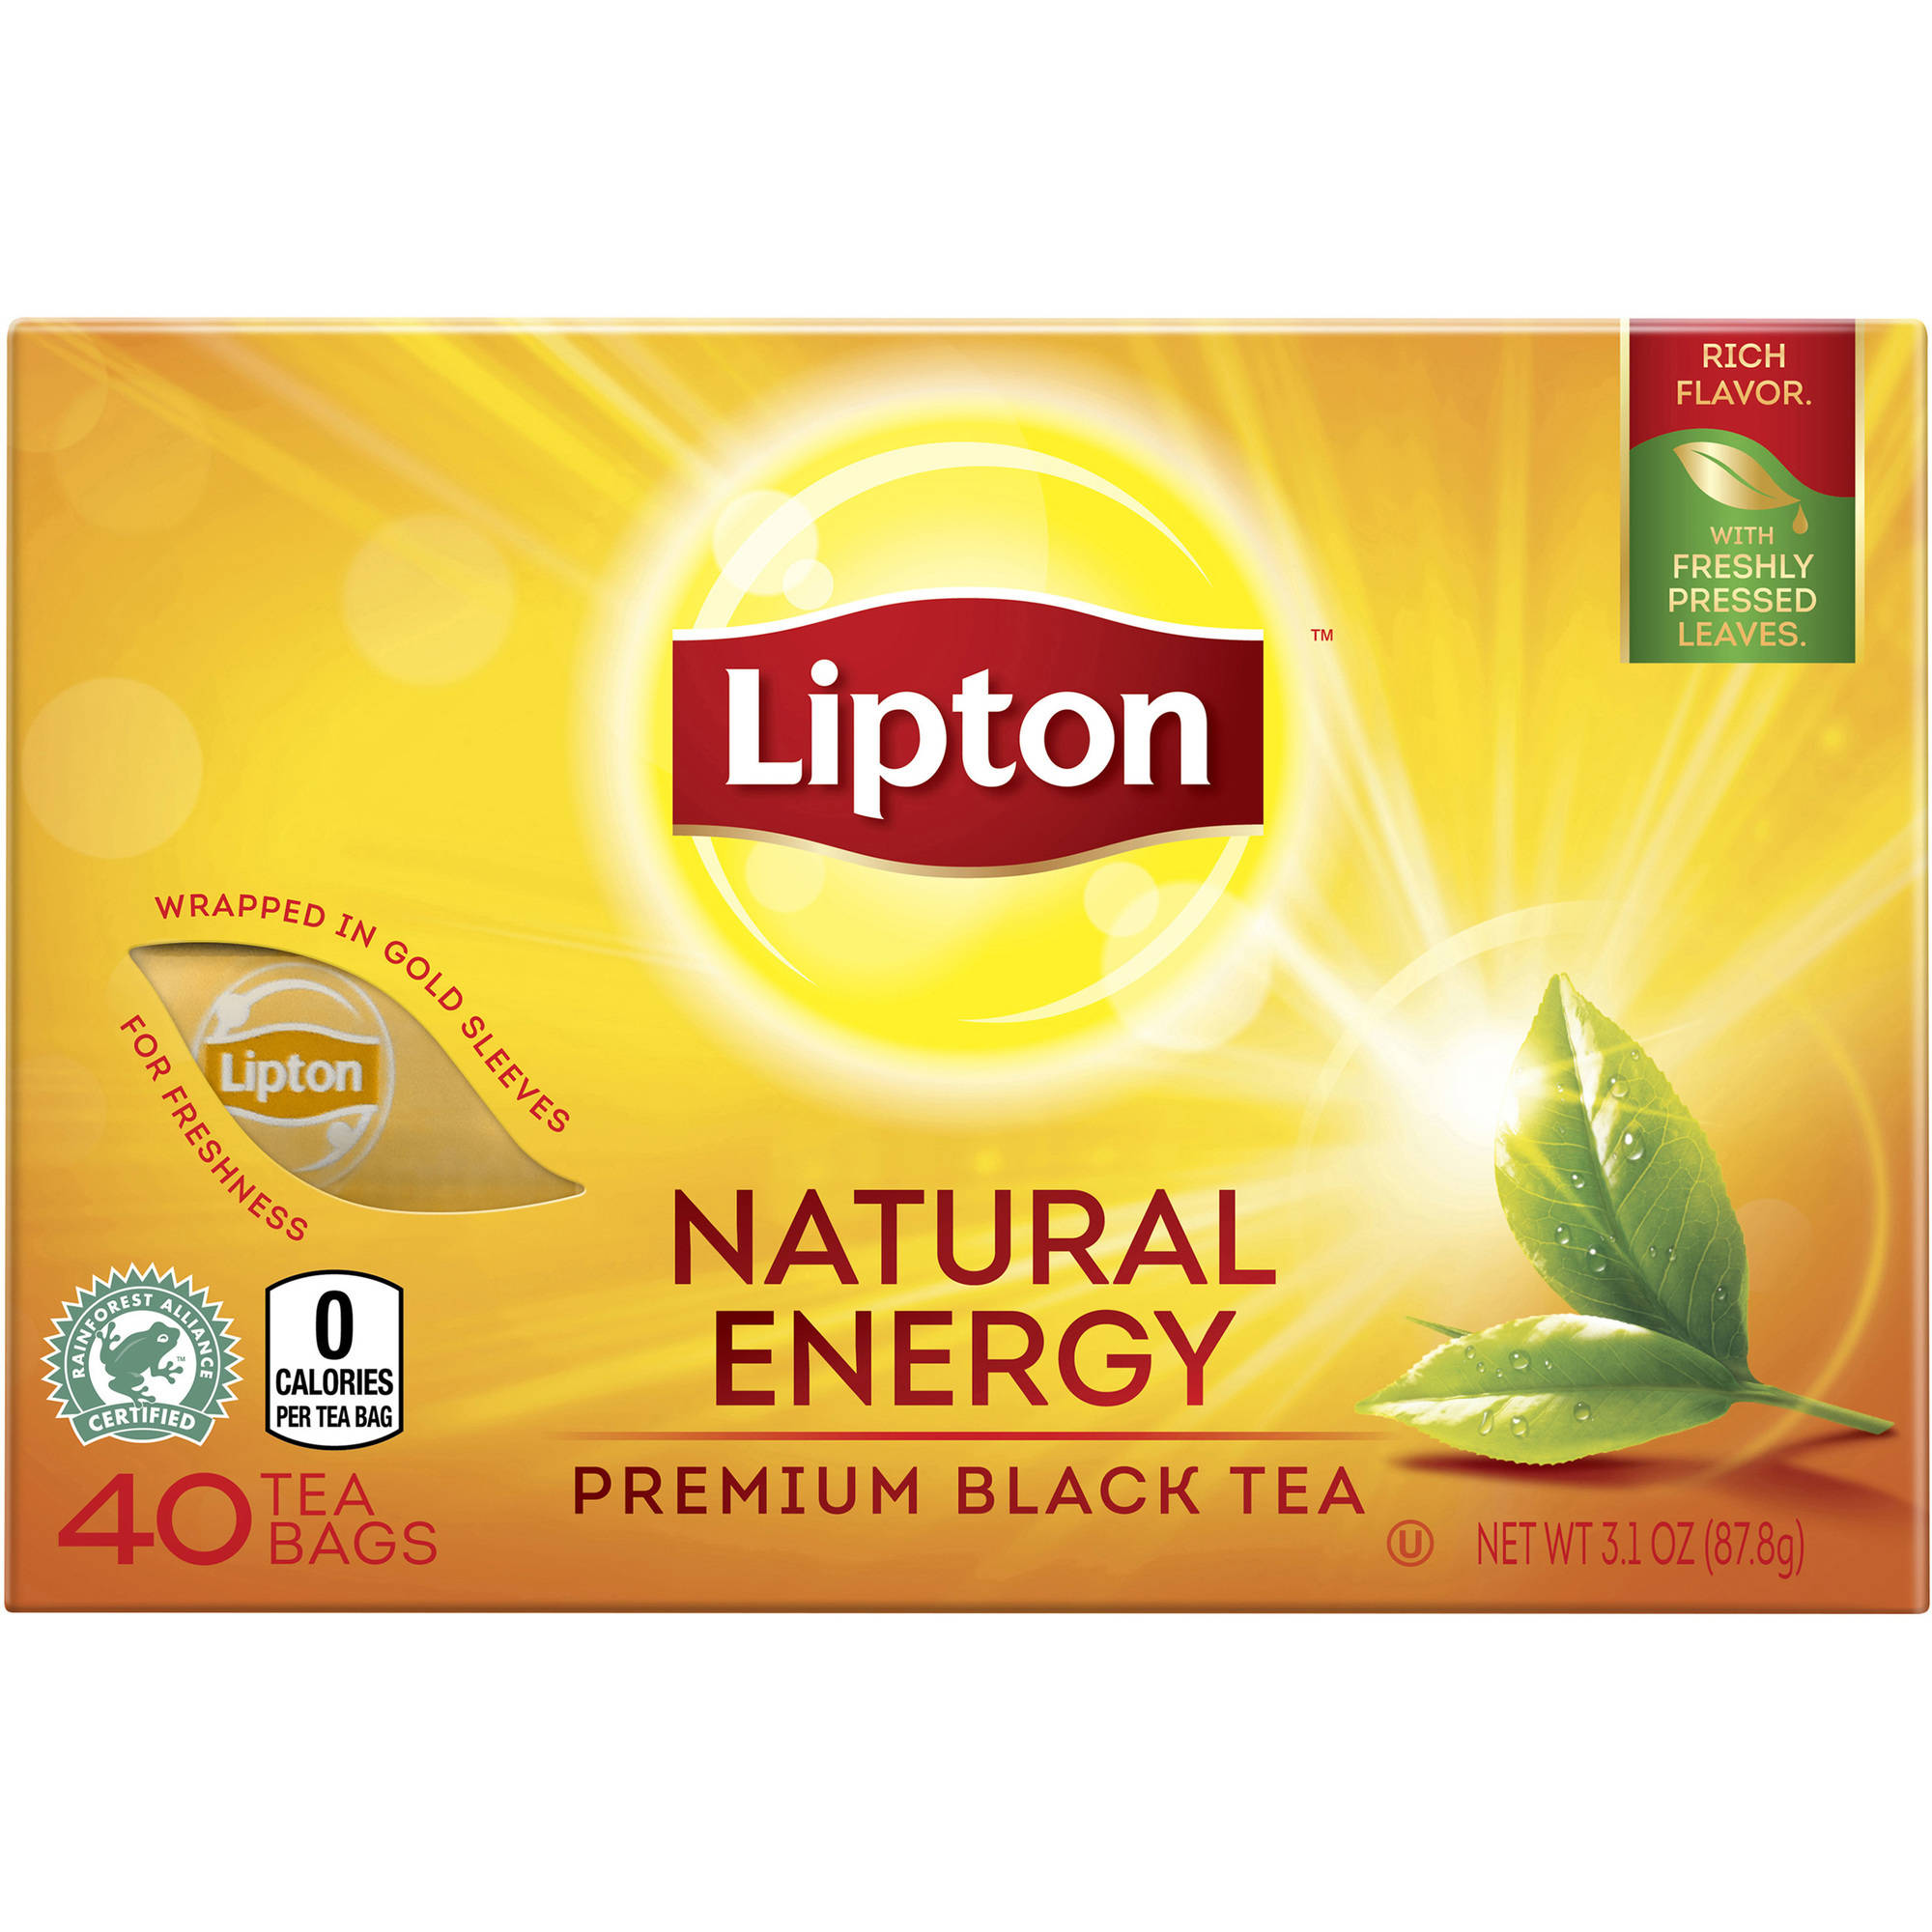 Lipton Natural Energy Black Tea Bags, 40 count, 3.1 oz